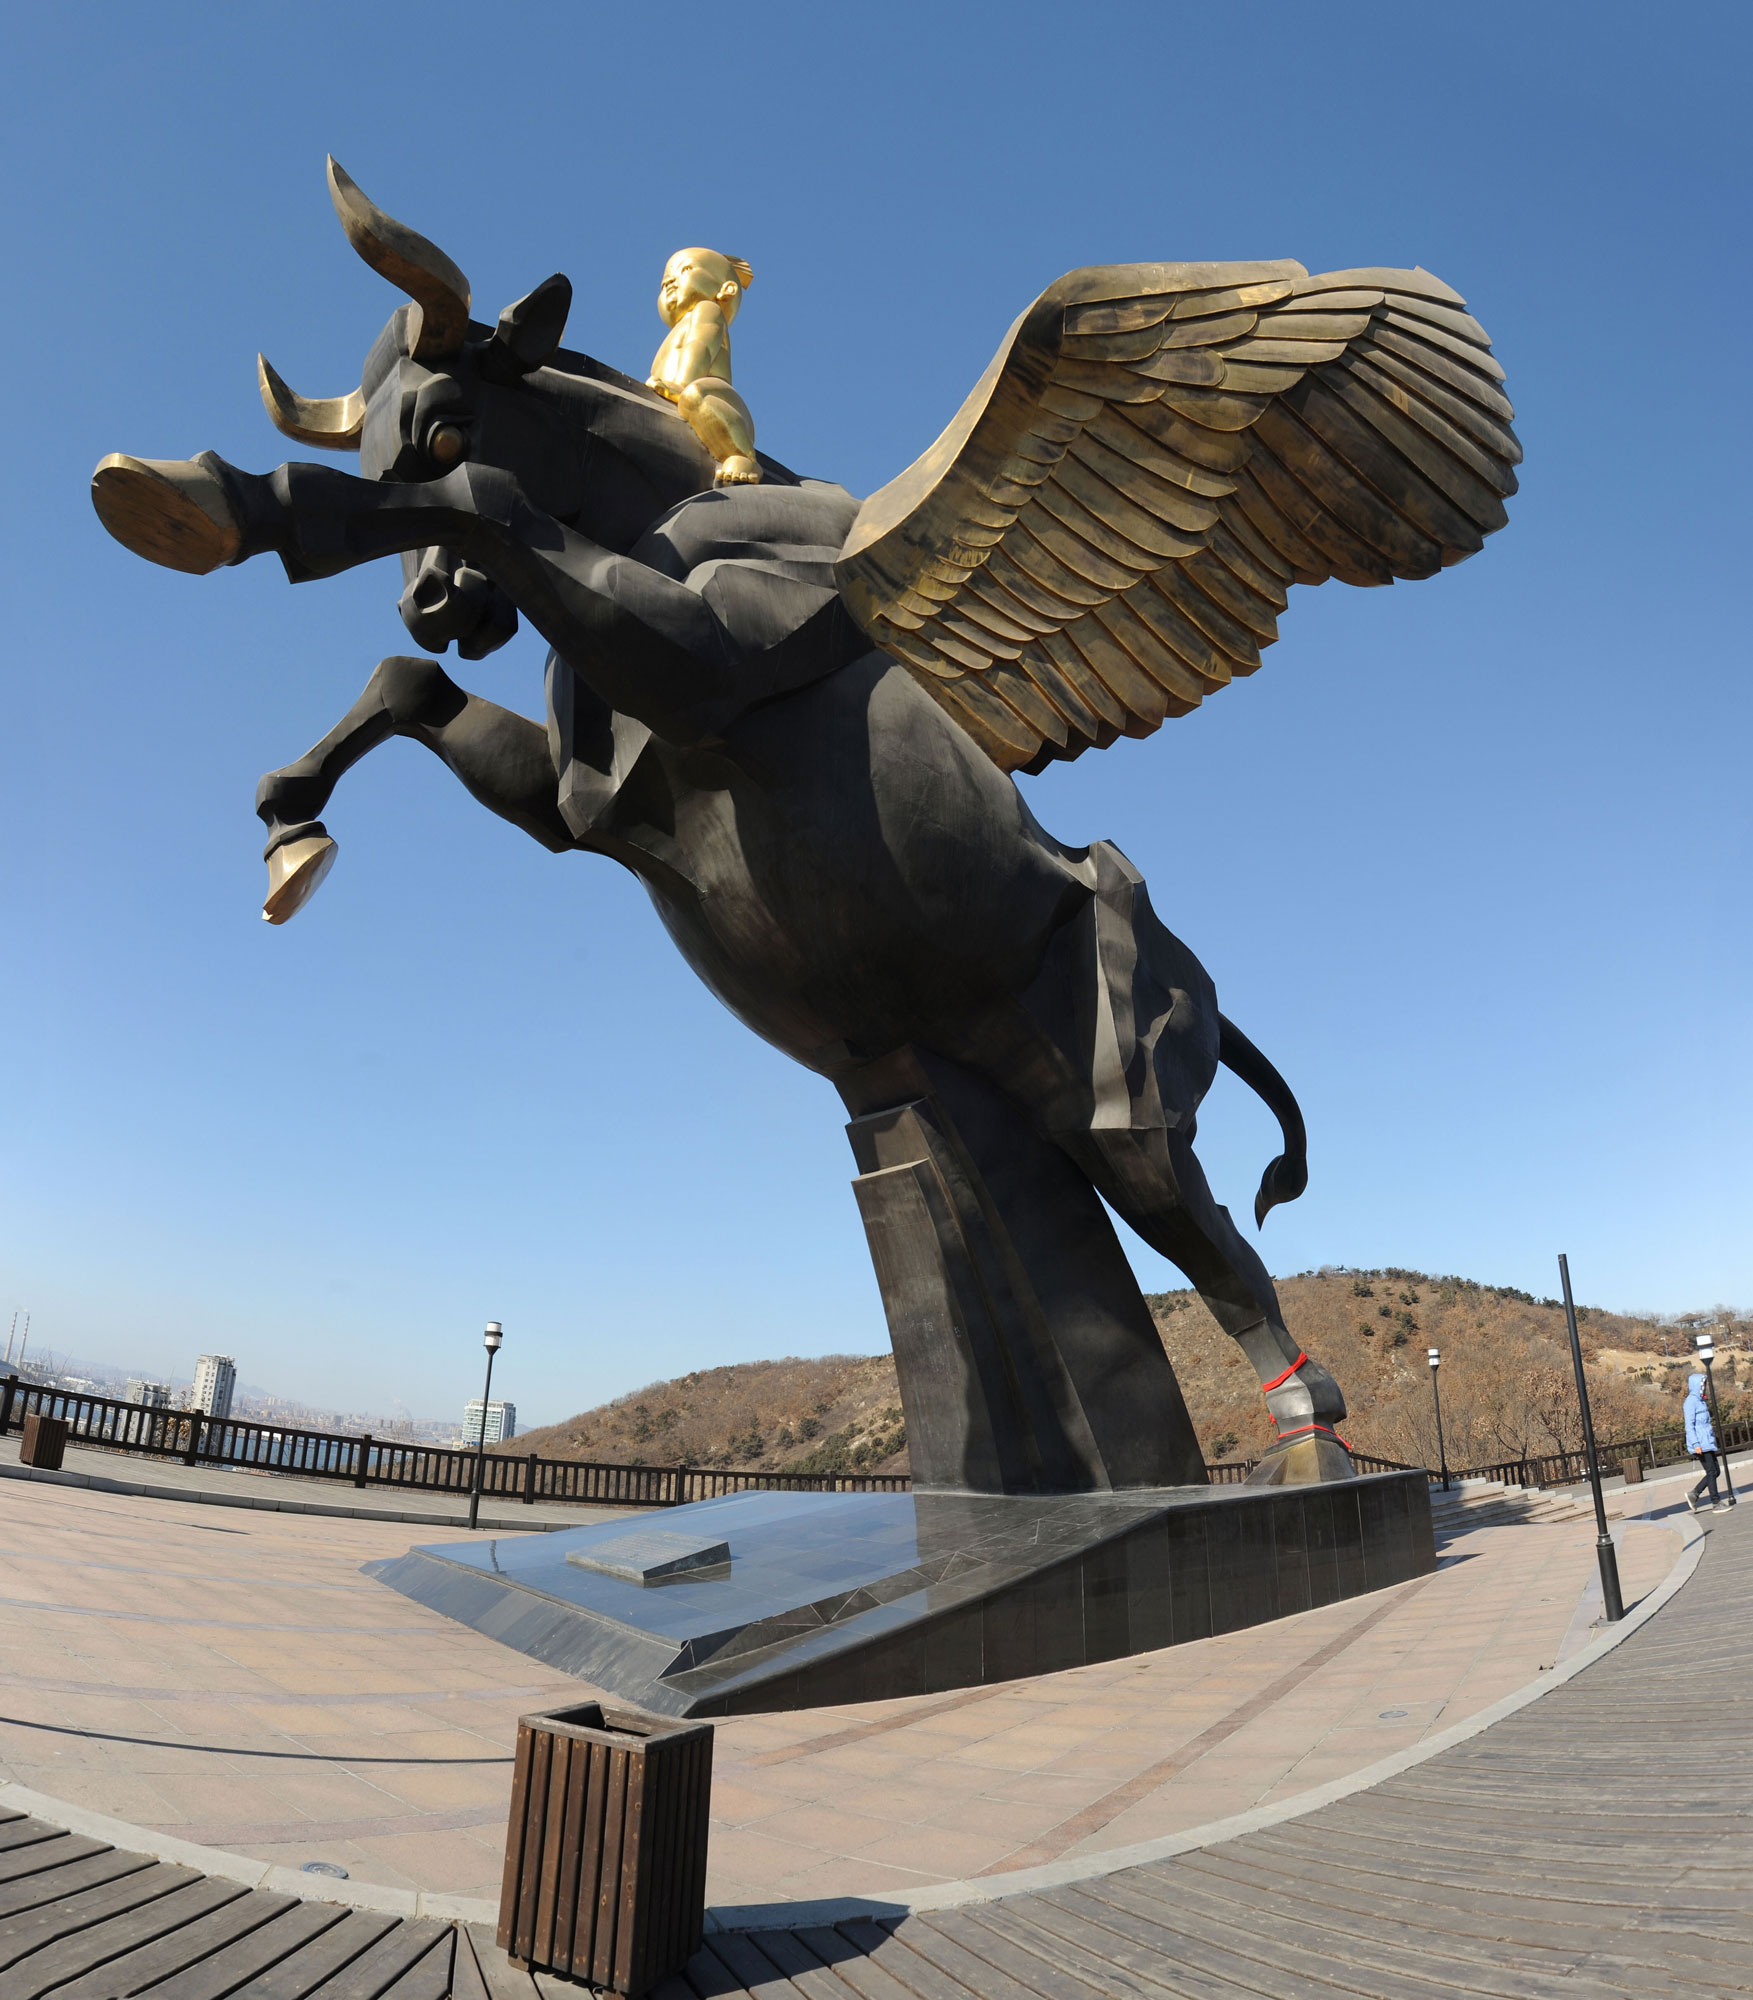 A winged bull is the symbol of Dalian City, China